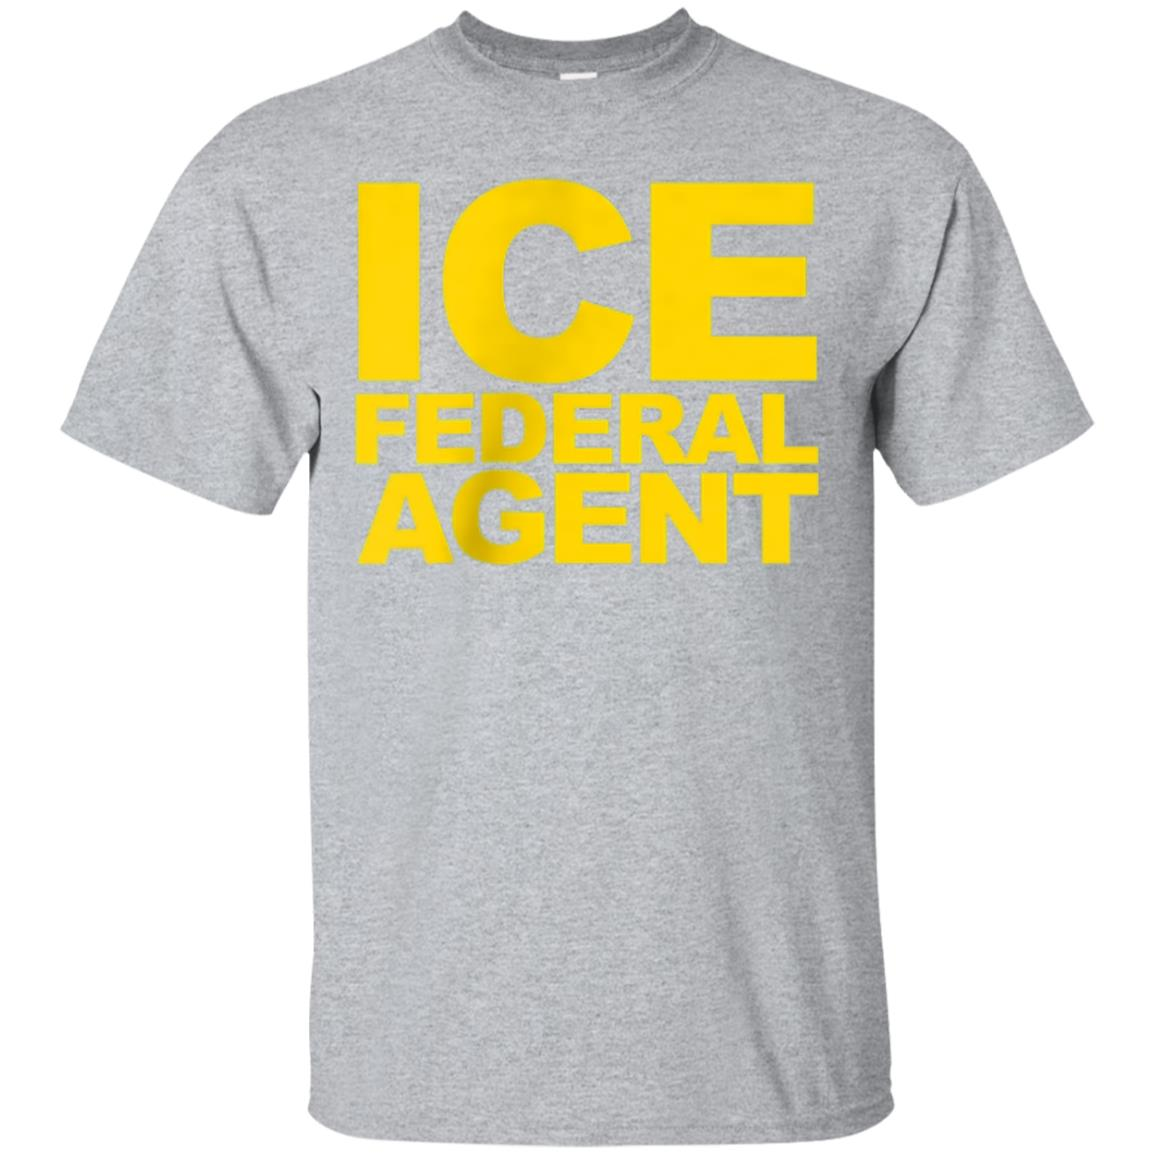 ICE Federal Agent Shirt Navy Blue Front Back Law 99promocode